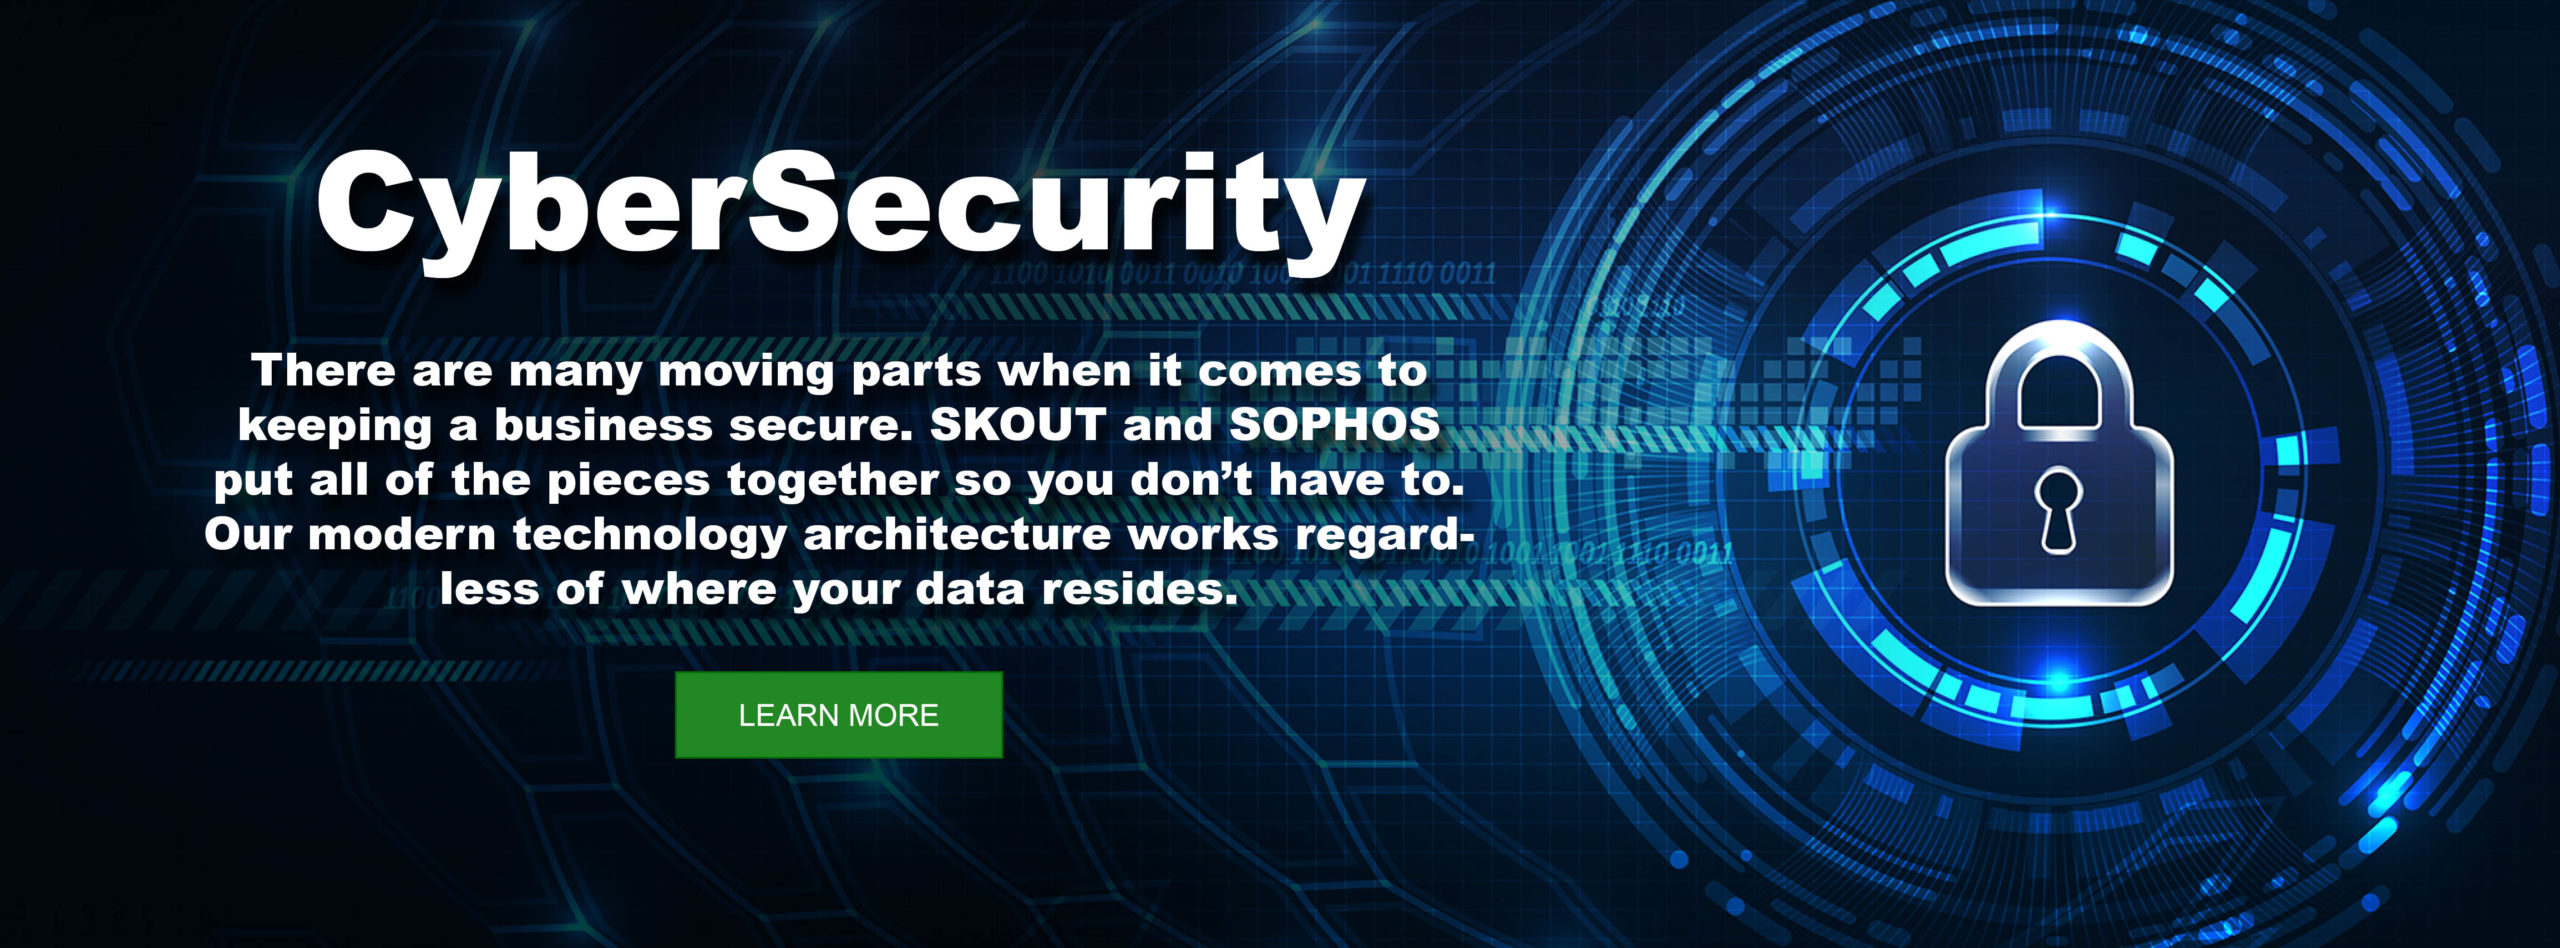 managed services cyber security banner #3